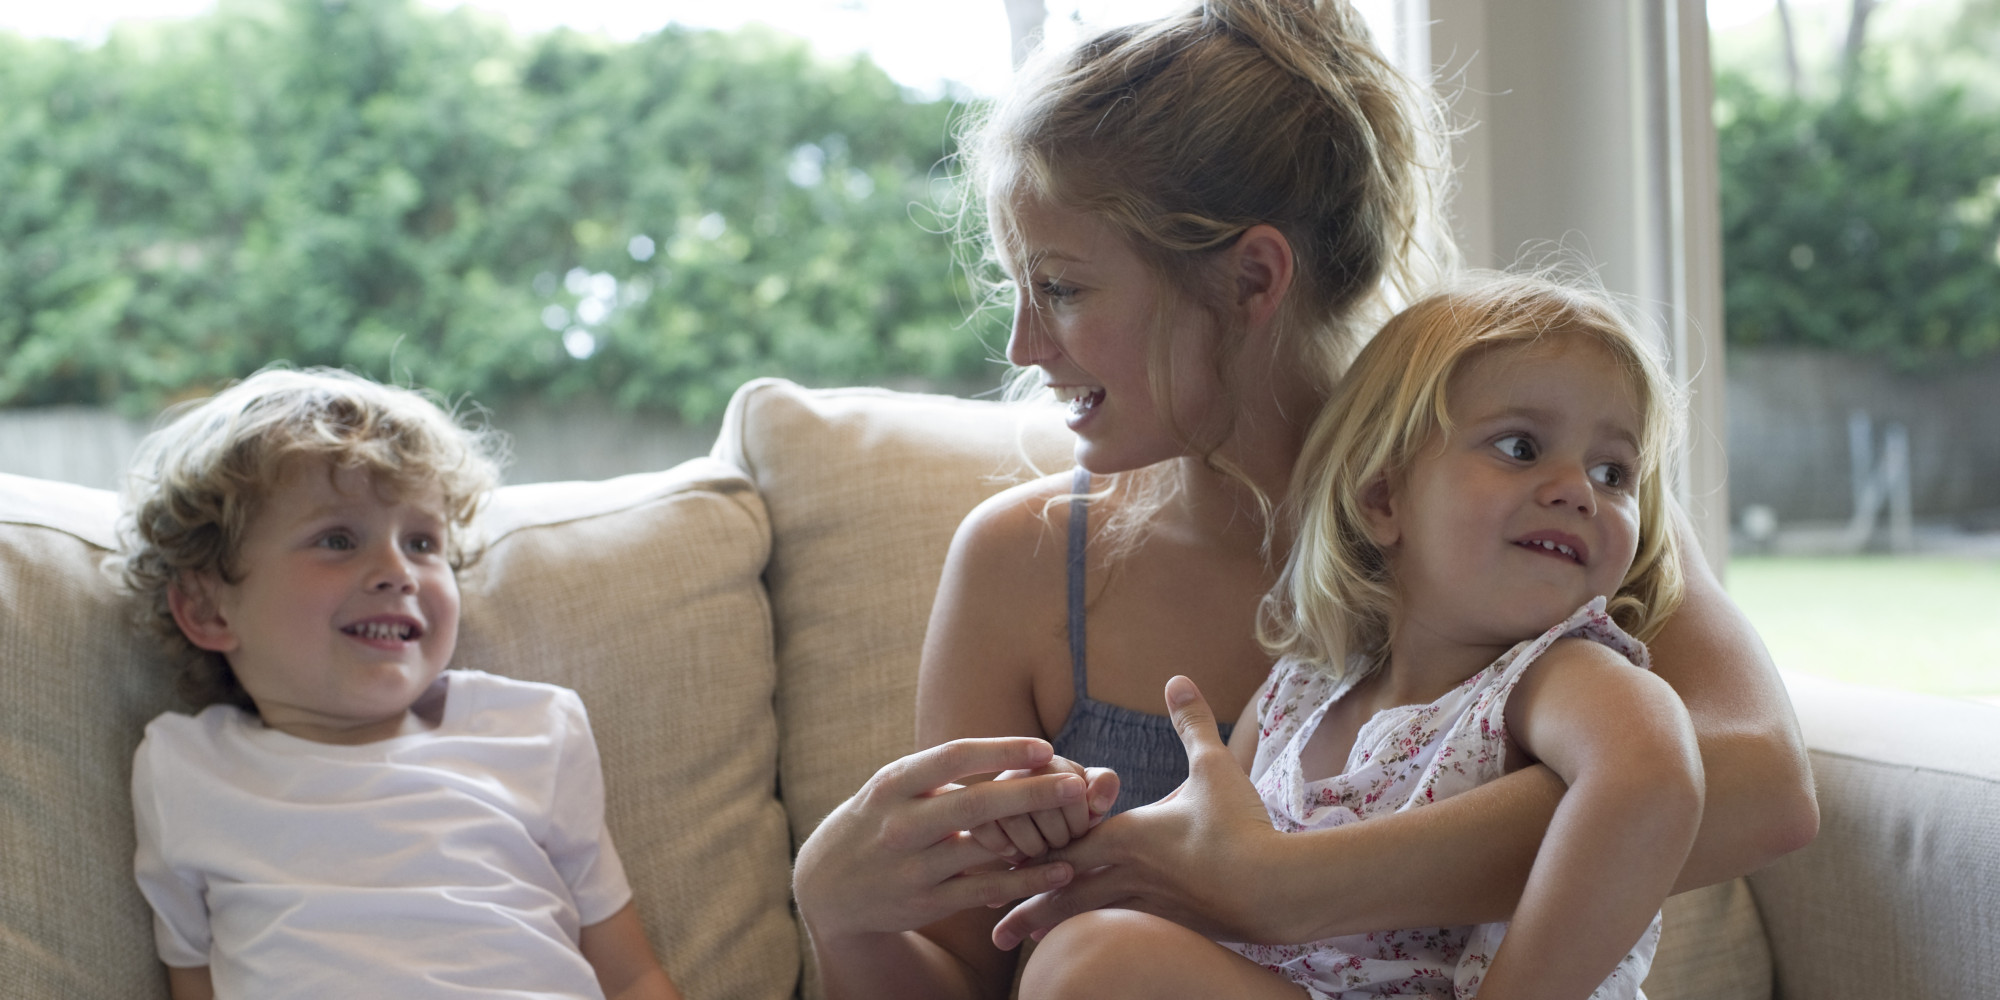 Finding A Good Babysitter In London